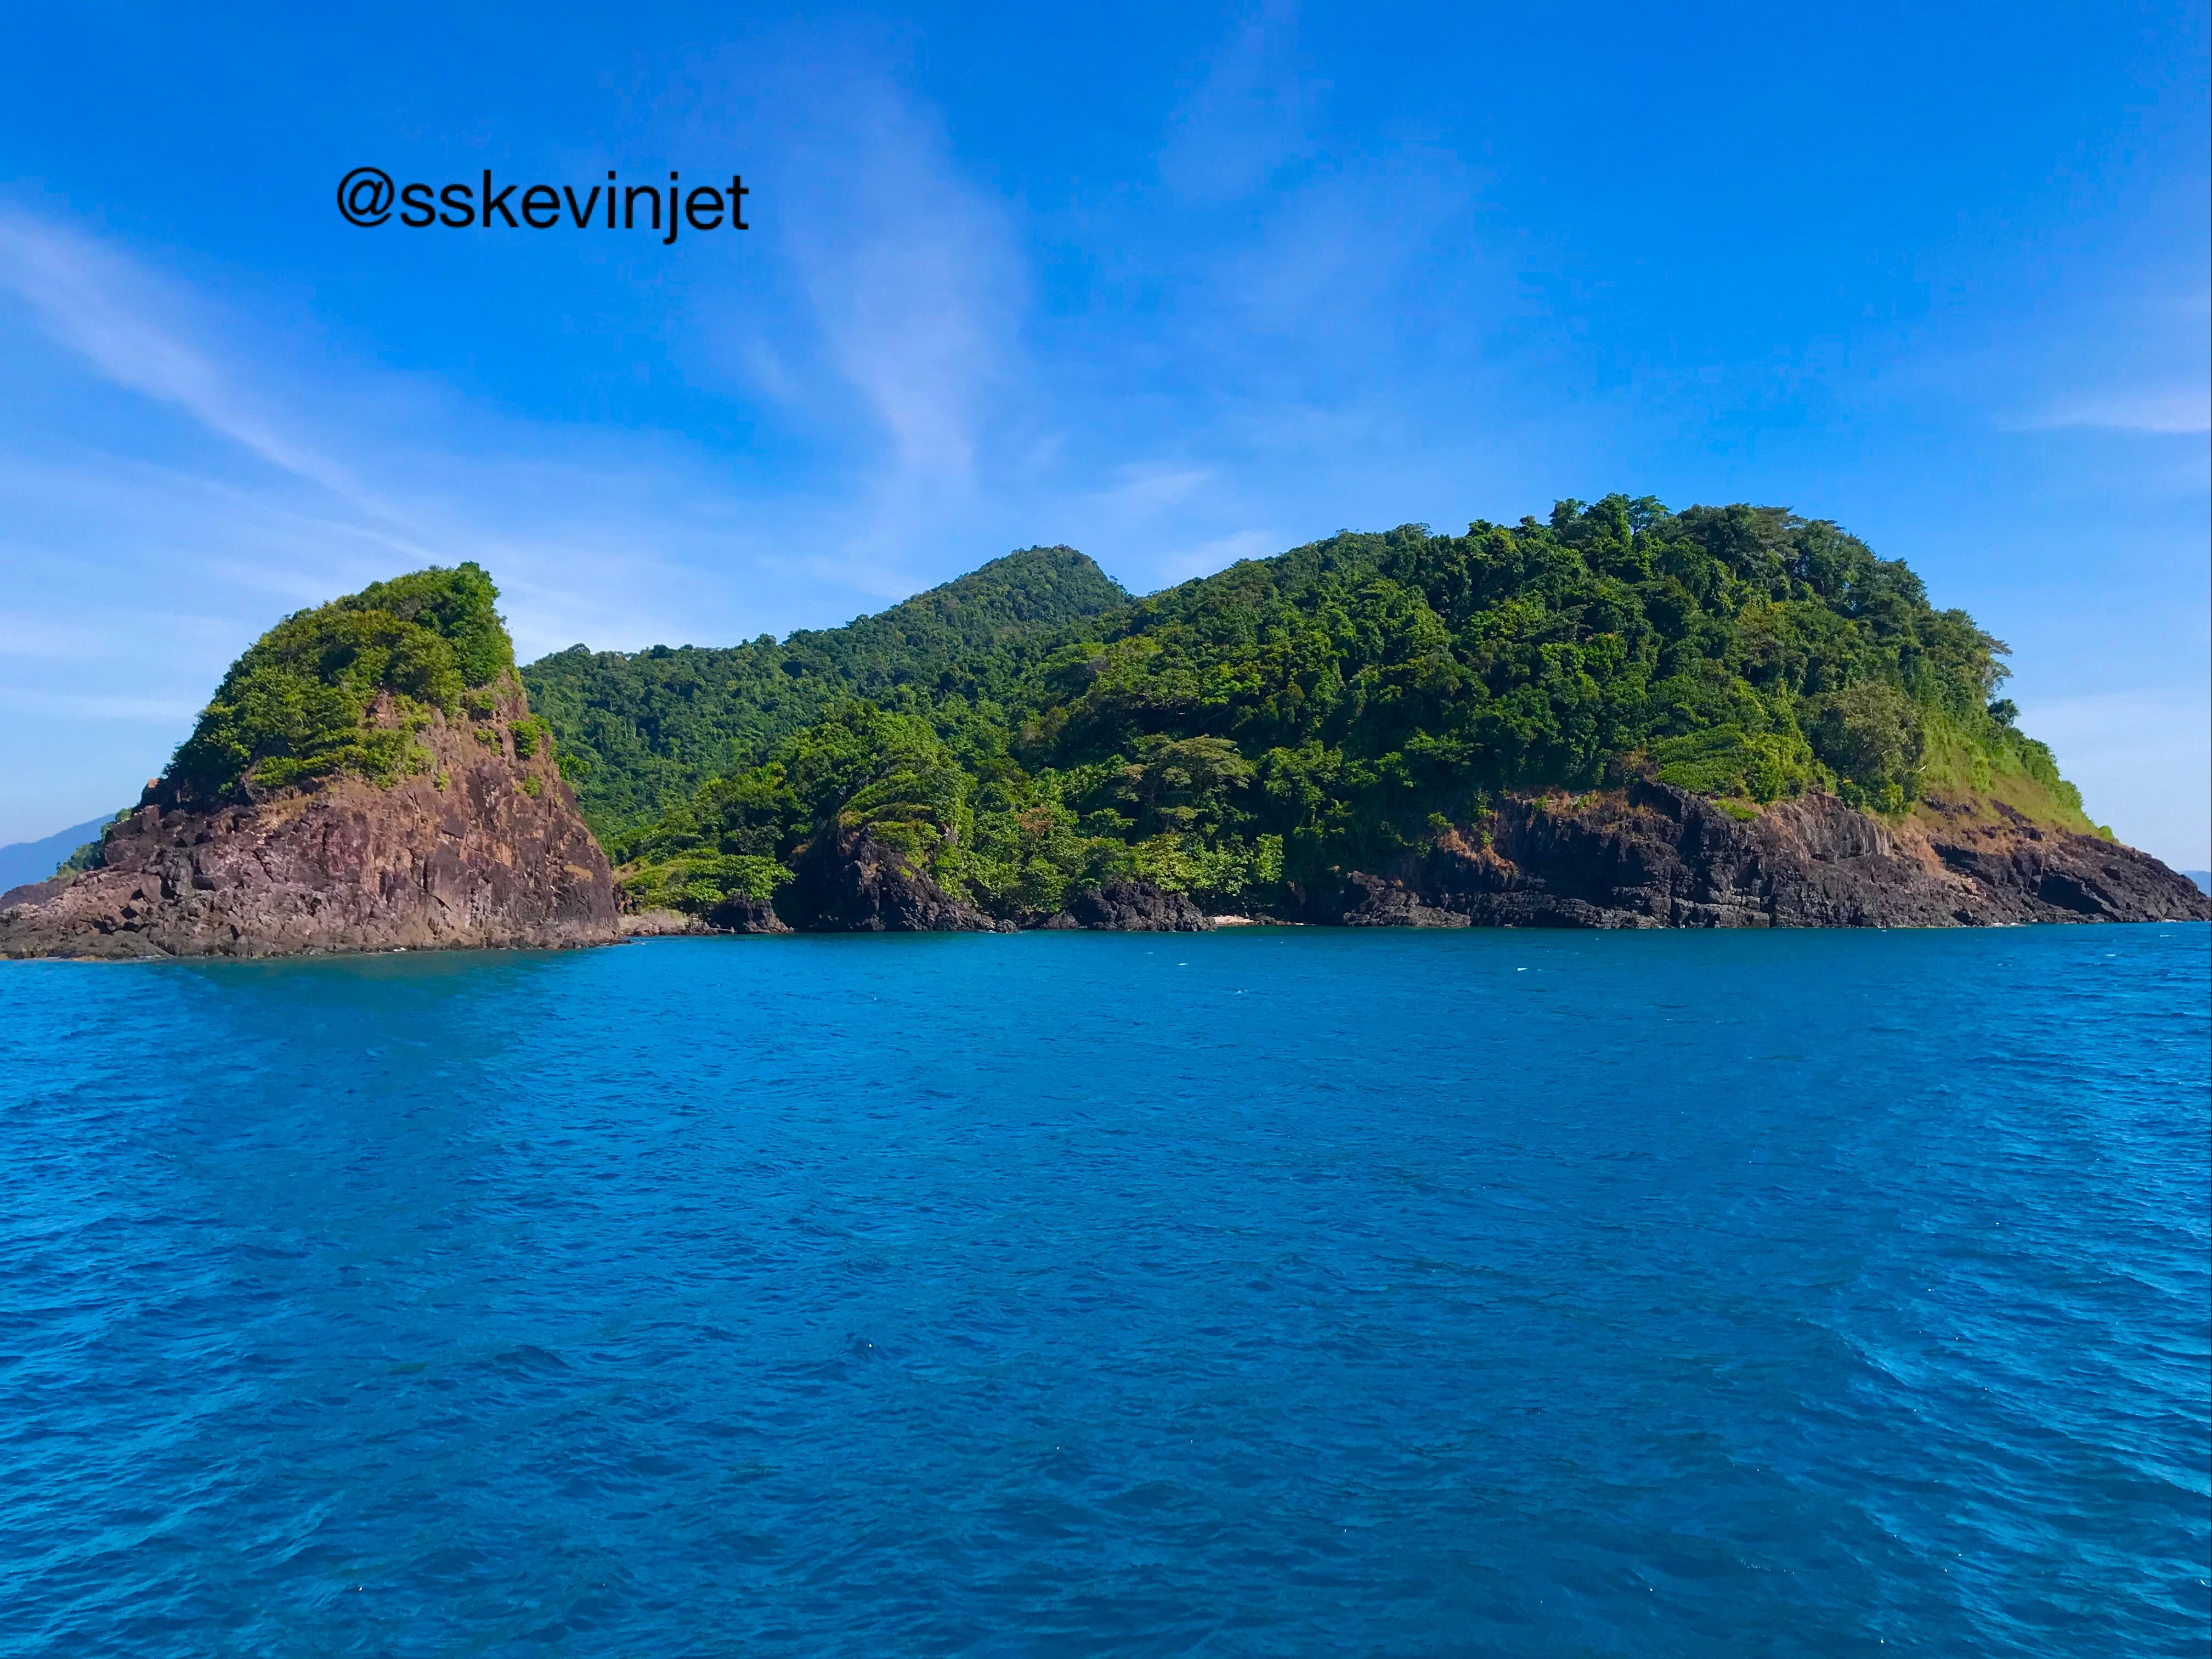 Blue Sea Green Island And The Blue Sky With Cloud Sskevinjet Travelphotography Landscapephotography Sky And Clouds Landscape Photography Travel Photography